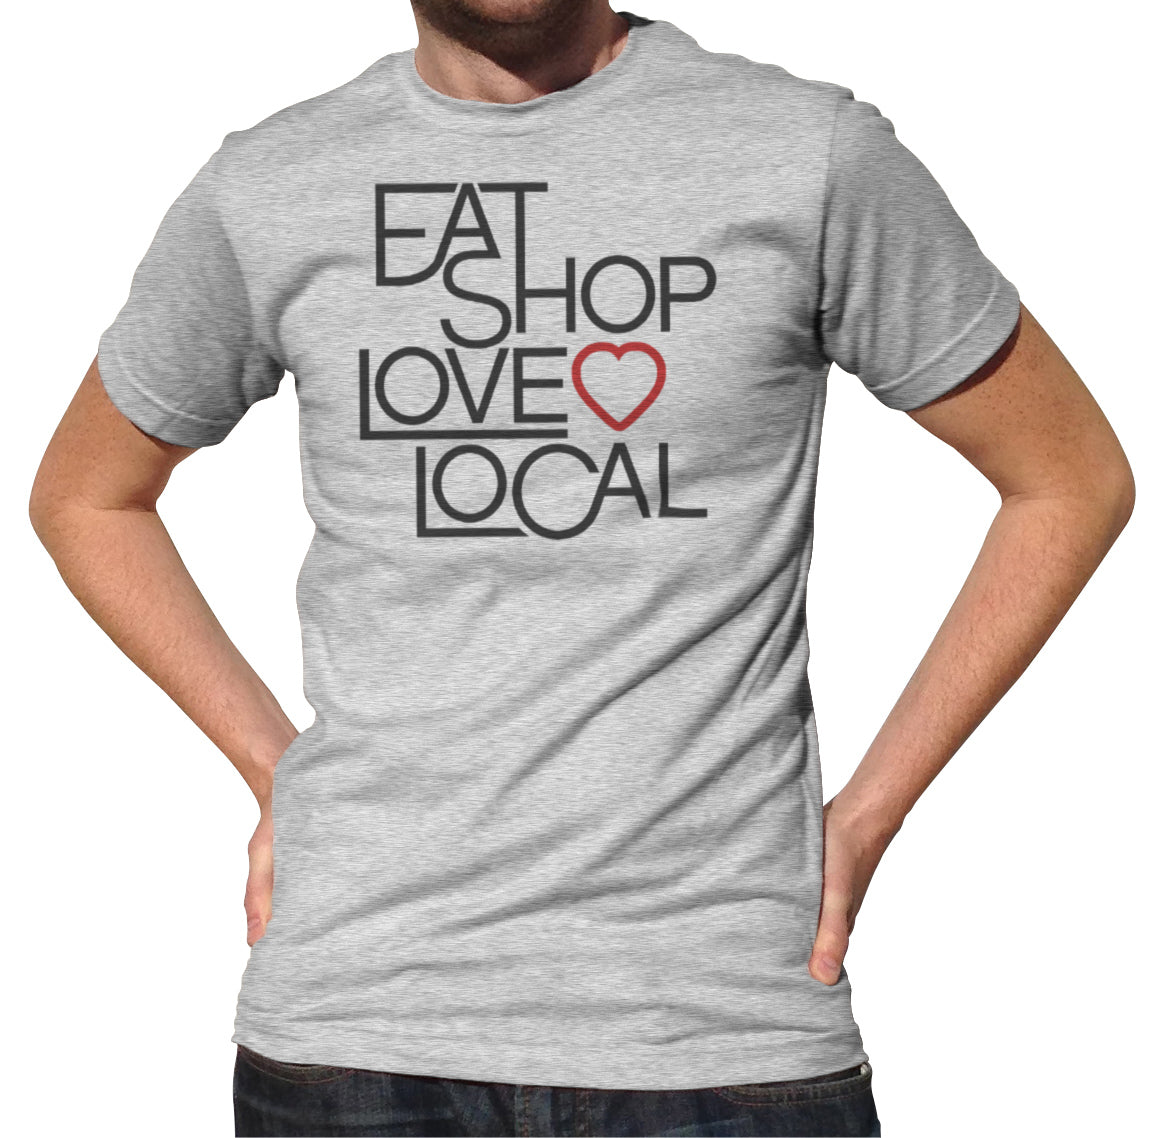 Men's Love Shop Eat Local T-Shirt